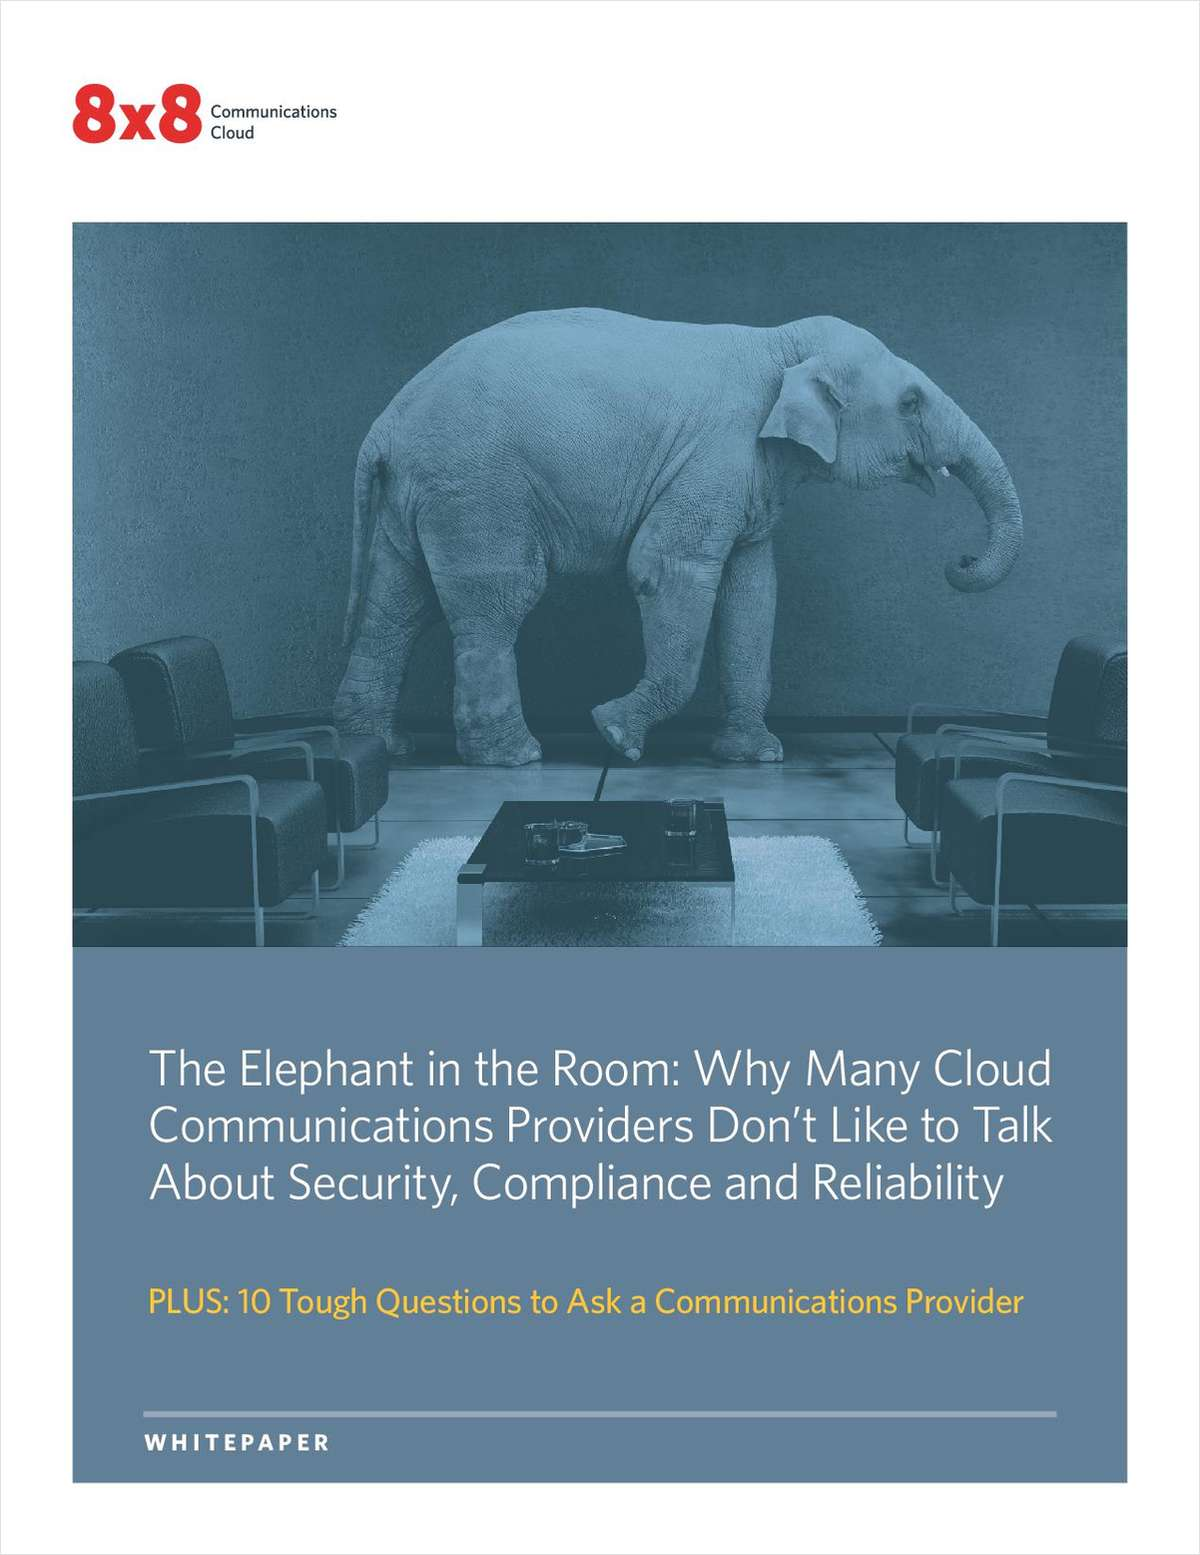 The Elephant Herd in the Room: Why Other Enterprise VoIP Providers Don't Like to Talk About Compliance, Security and Reliability